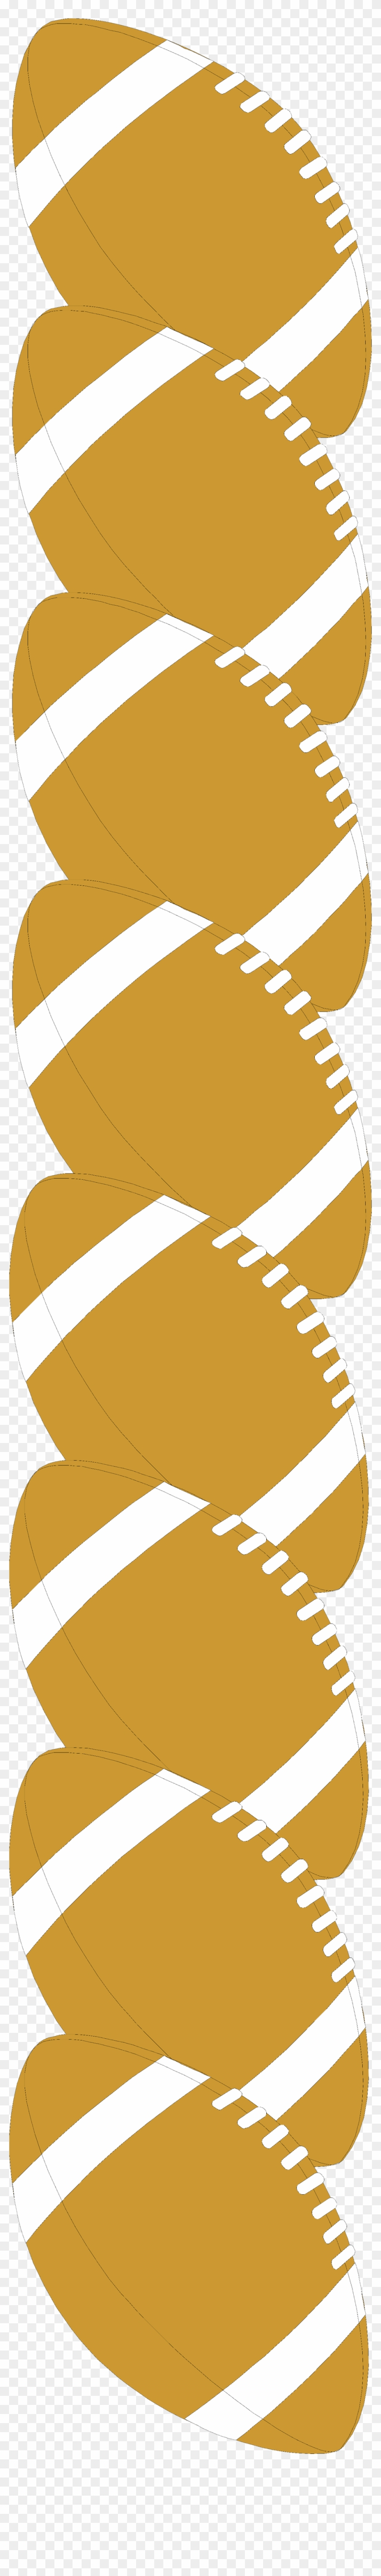 Clip Arts Related To - Free Clipart Football Border #255108